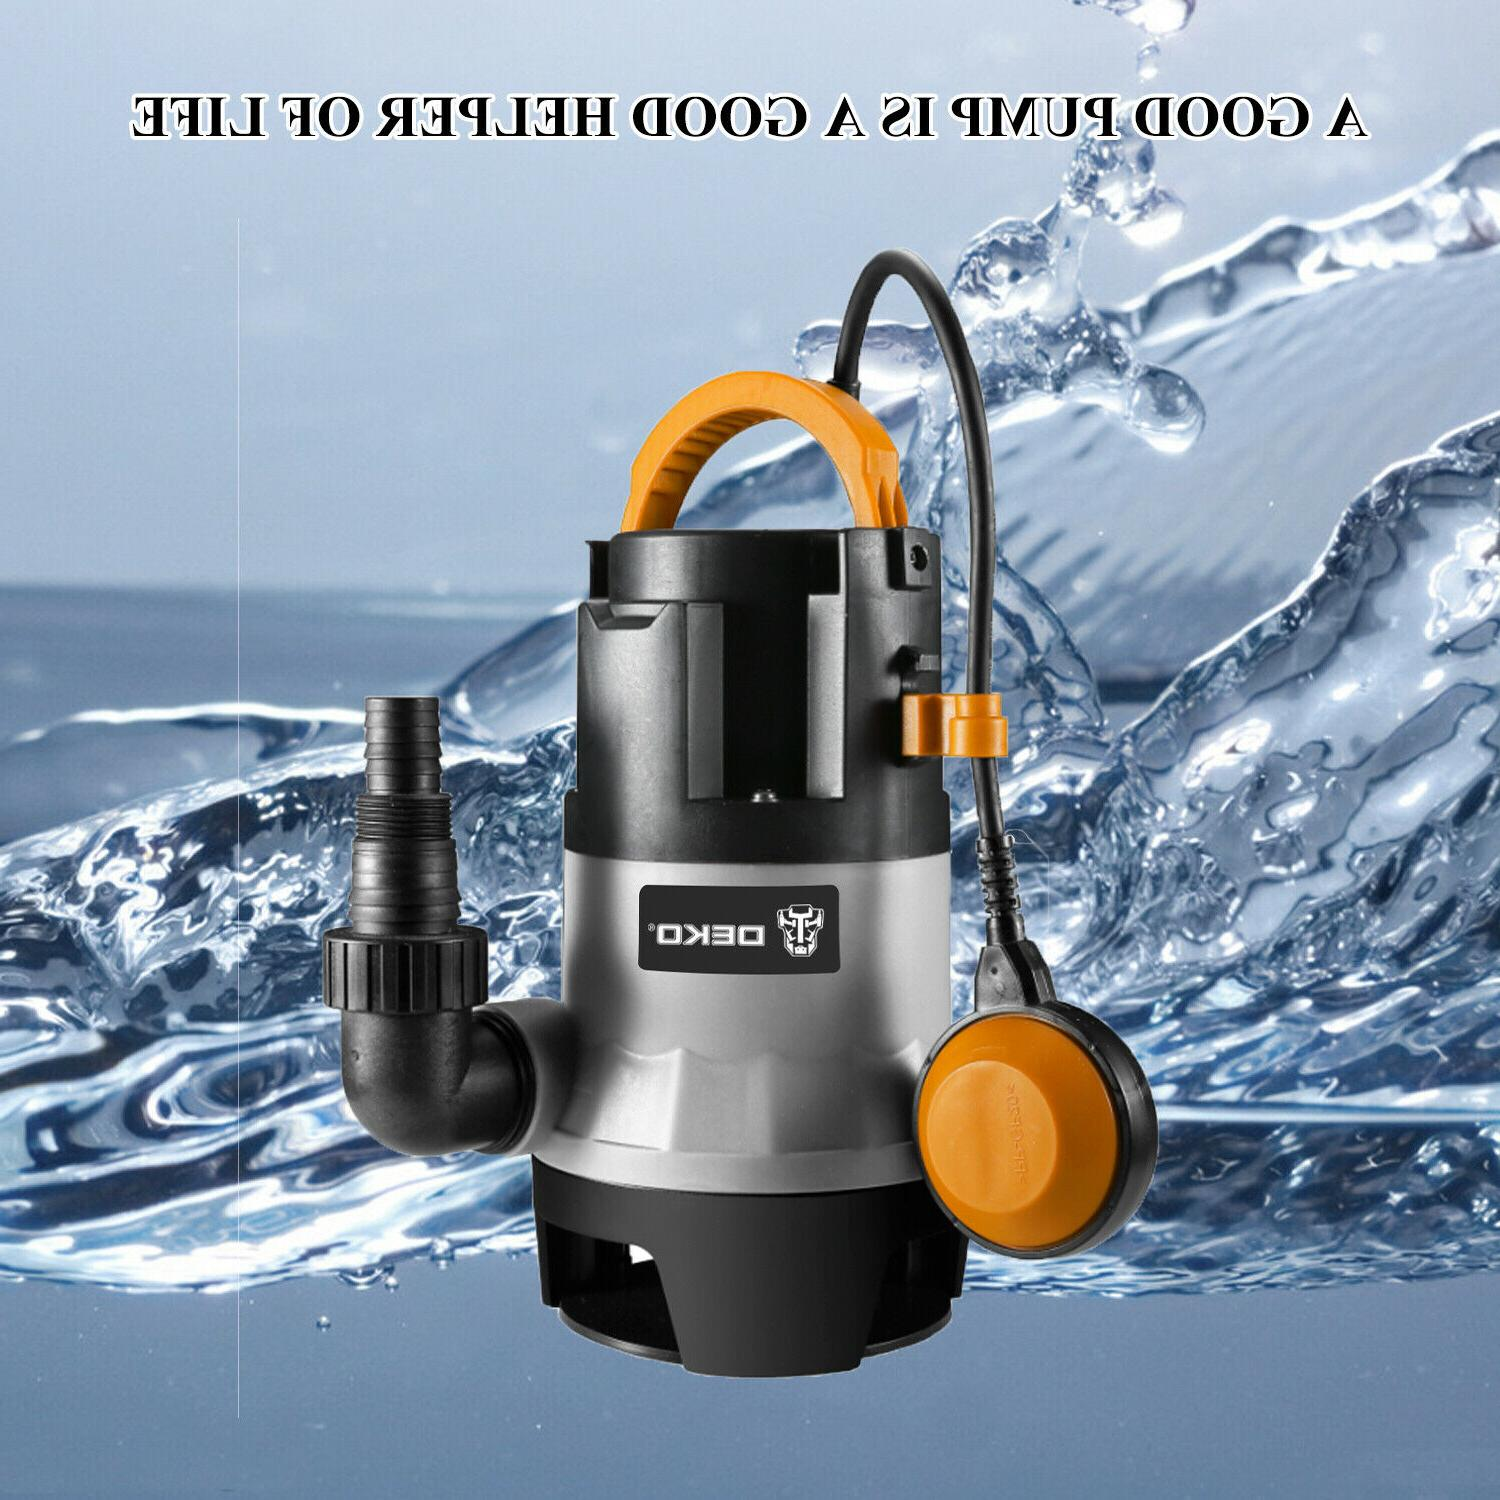 DEKO 400W 1/2HP Sump Pump Water